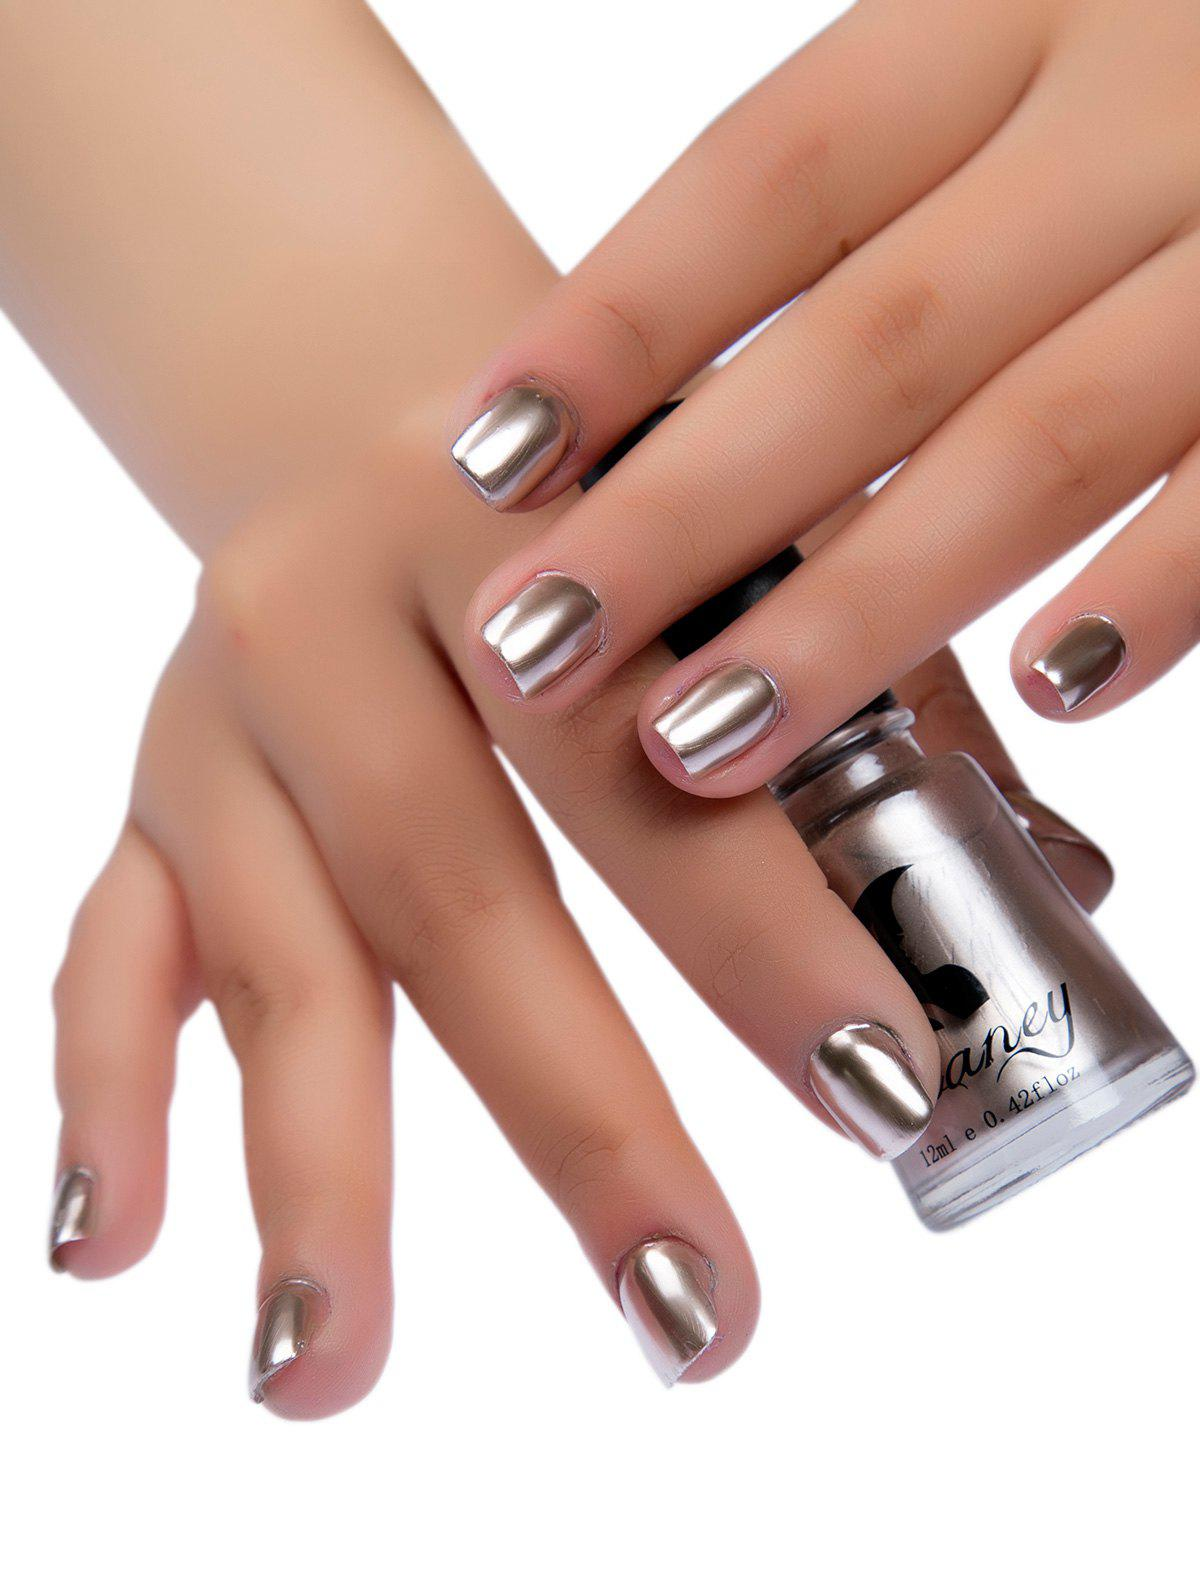 Shop Glitter Mirror Effect Nail Polish Metallic Chrome Nail Art Polish Gel